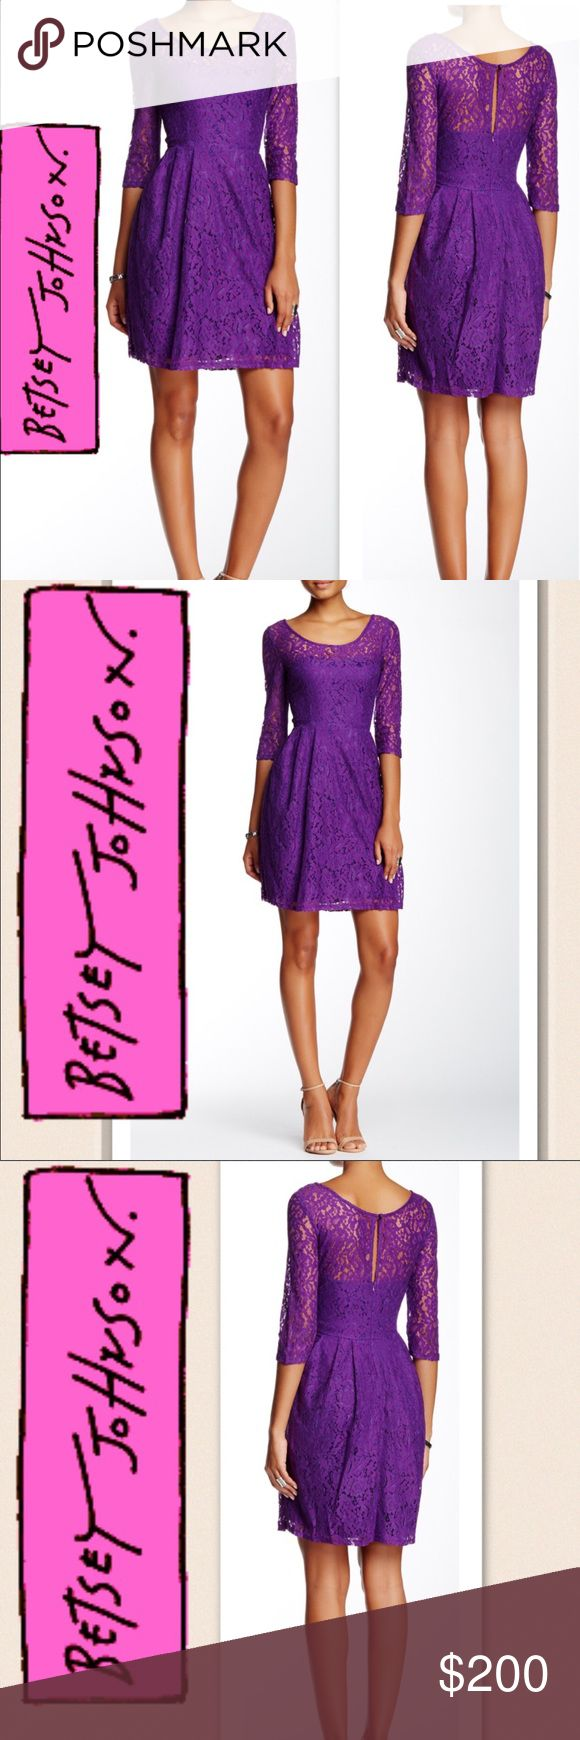 """Coming Betsey Johnson Lace Skater Plum Dress Super cute - flattering lace dress for wedding, date night, out on the town with the girls.  - Scoop neck - Elbow sleeves - Scoop back with concealed zip closure - Keyhole back cutout with button-and-loop closure - Box pleat skirt - Lace overlay construction - Lined - Approx. 35.5"""" length  Material: Self: 56% cotton, 44% nylon Lining: 100% polyester  Fit: this style fits true to size. 'Model's stats for sizing: Model is wearing size 2 - Hips: 34''…"""